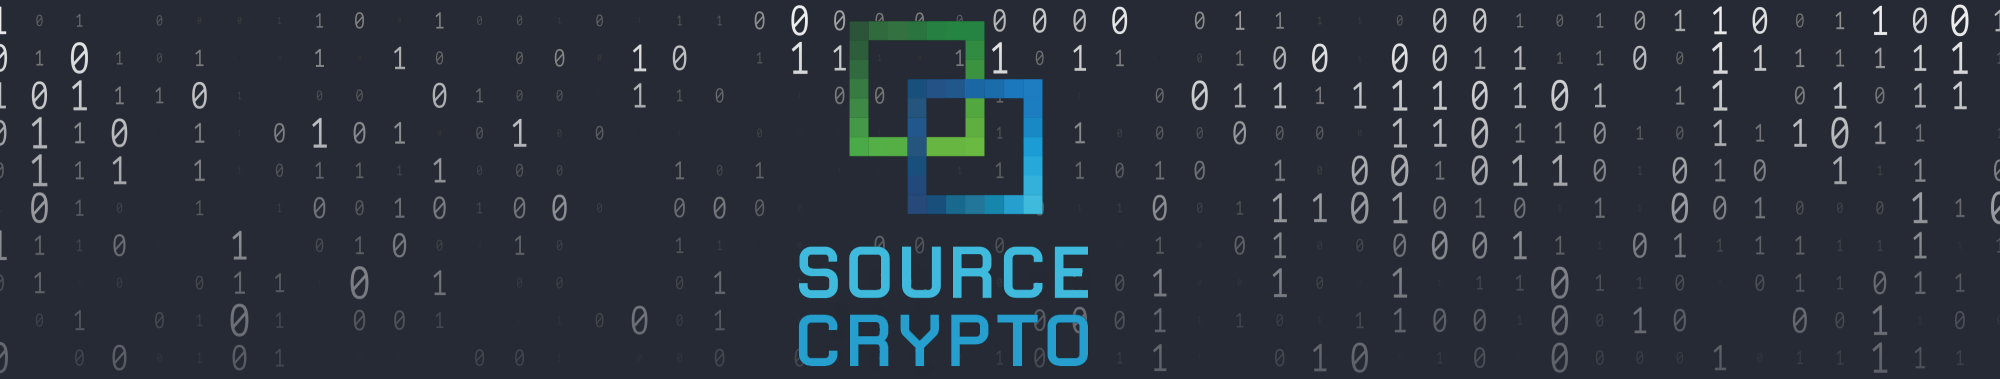 SourceCrypto Research-Index